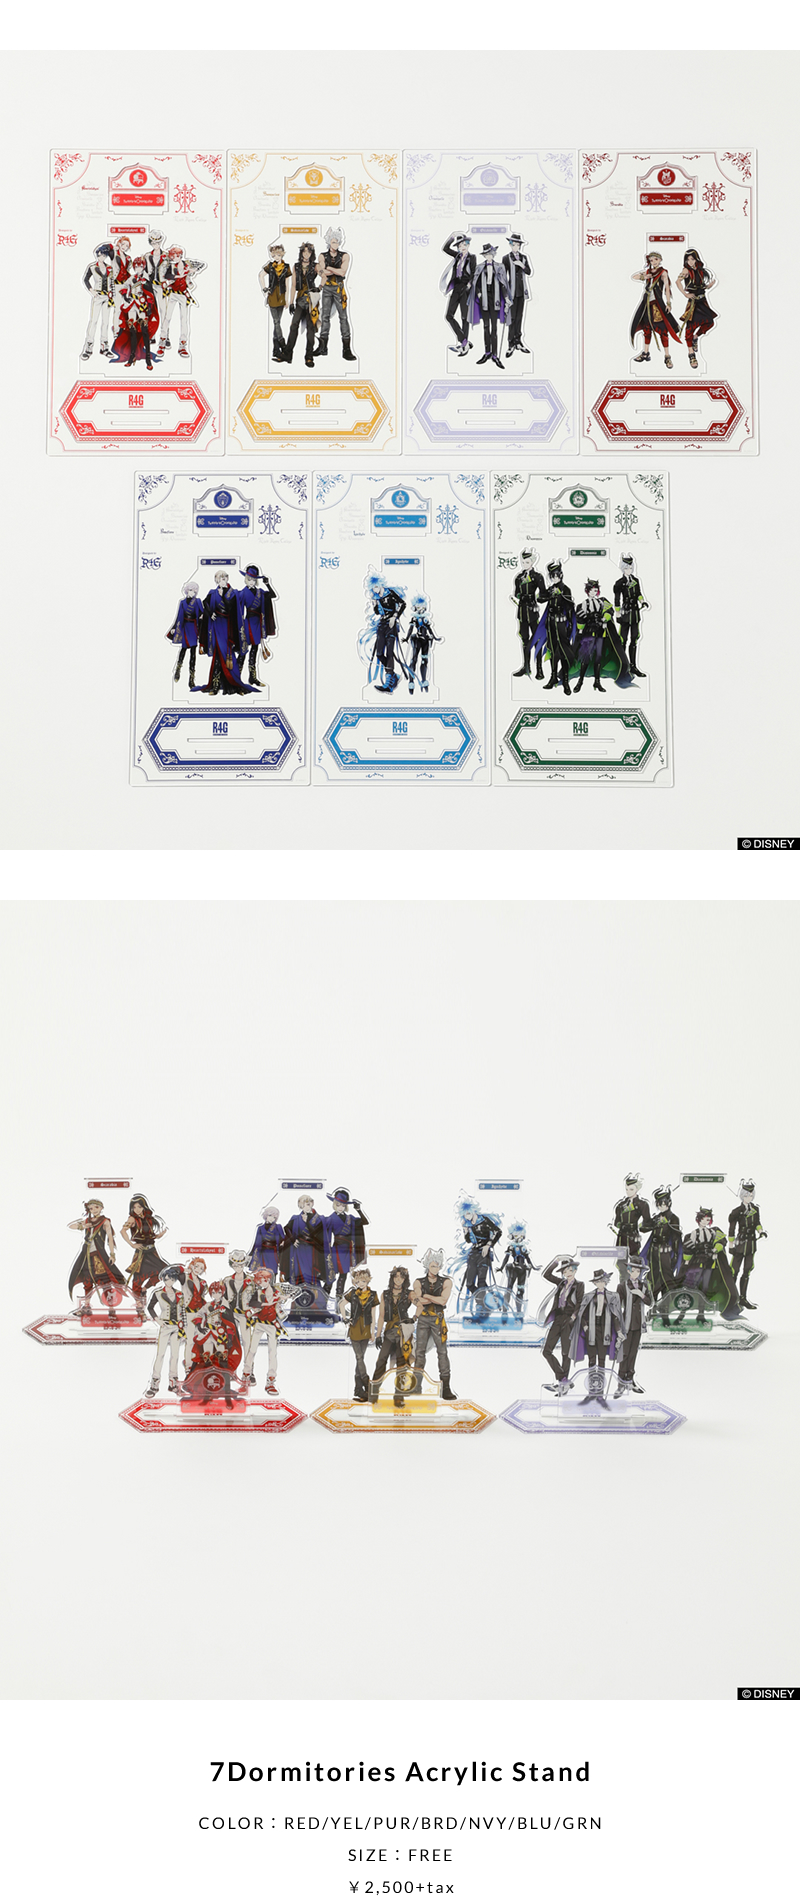 7Dormitories Acrylic Stand